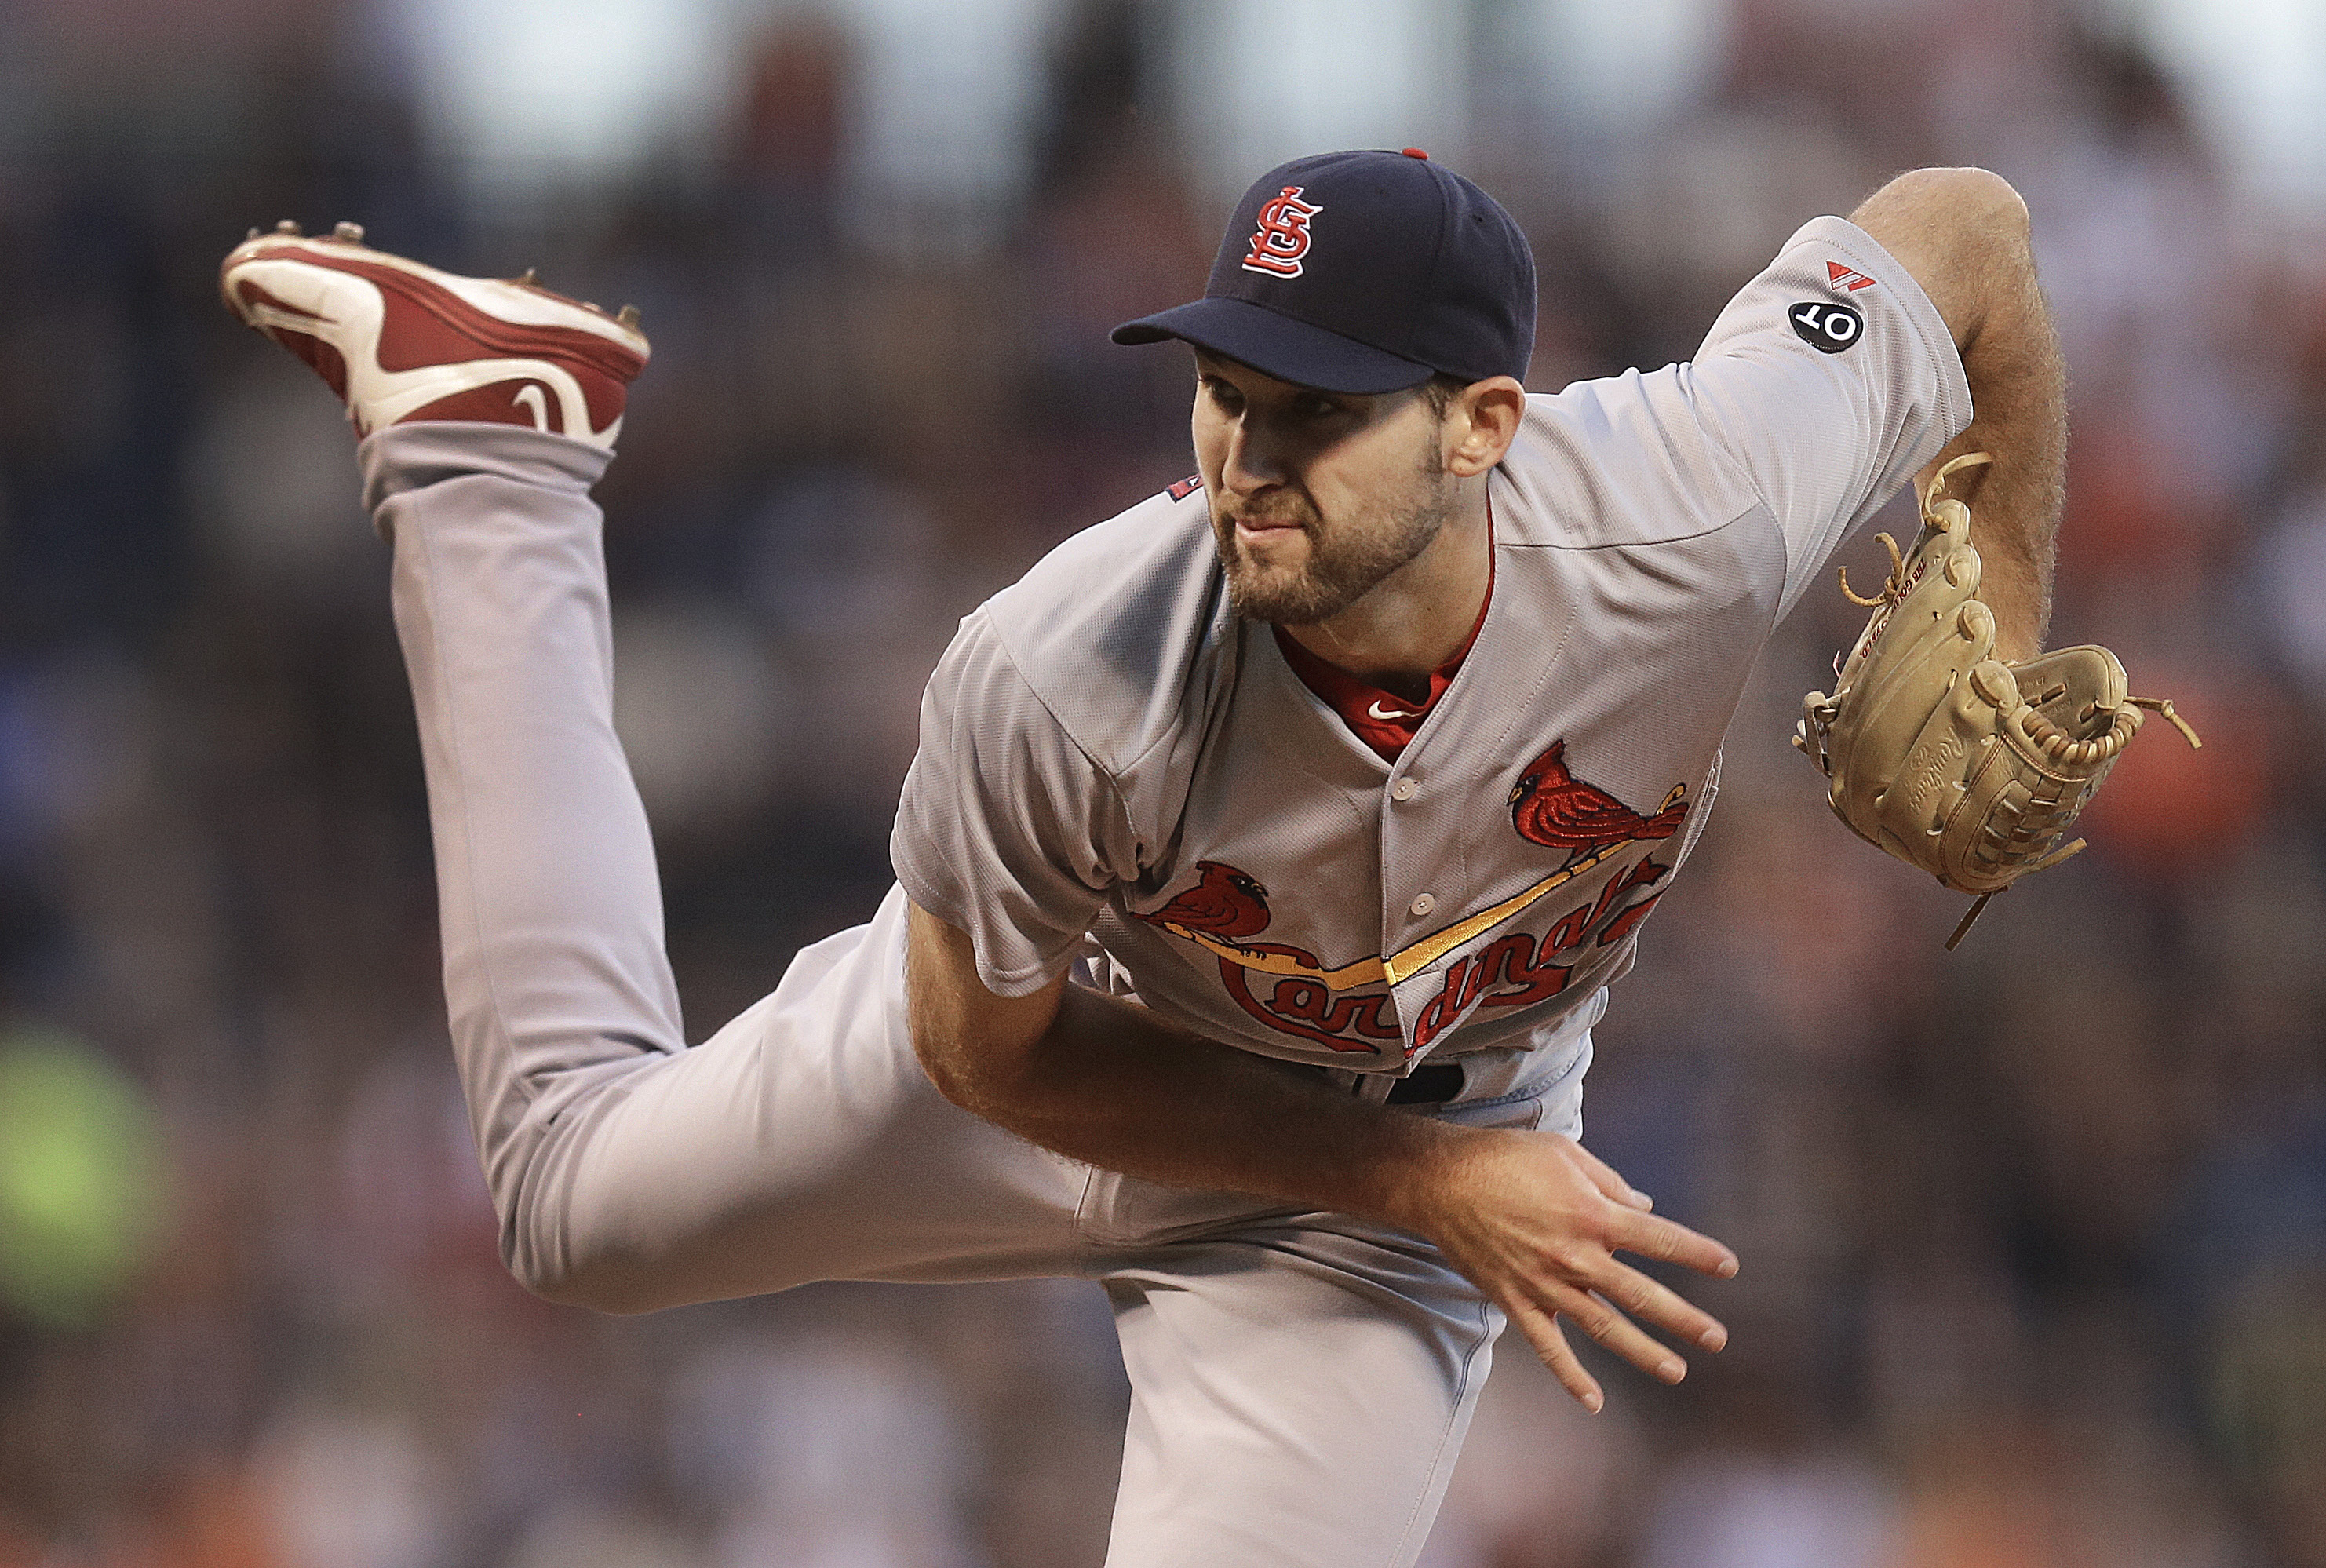 St. Louis Cardinals pitcher Michael Wacha watches a delivery to the San Francisco Giants during the first inning of a baseball game Friday, Aug. 28, 2015, in San Francisco. (AP Photo/Ben Margot)